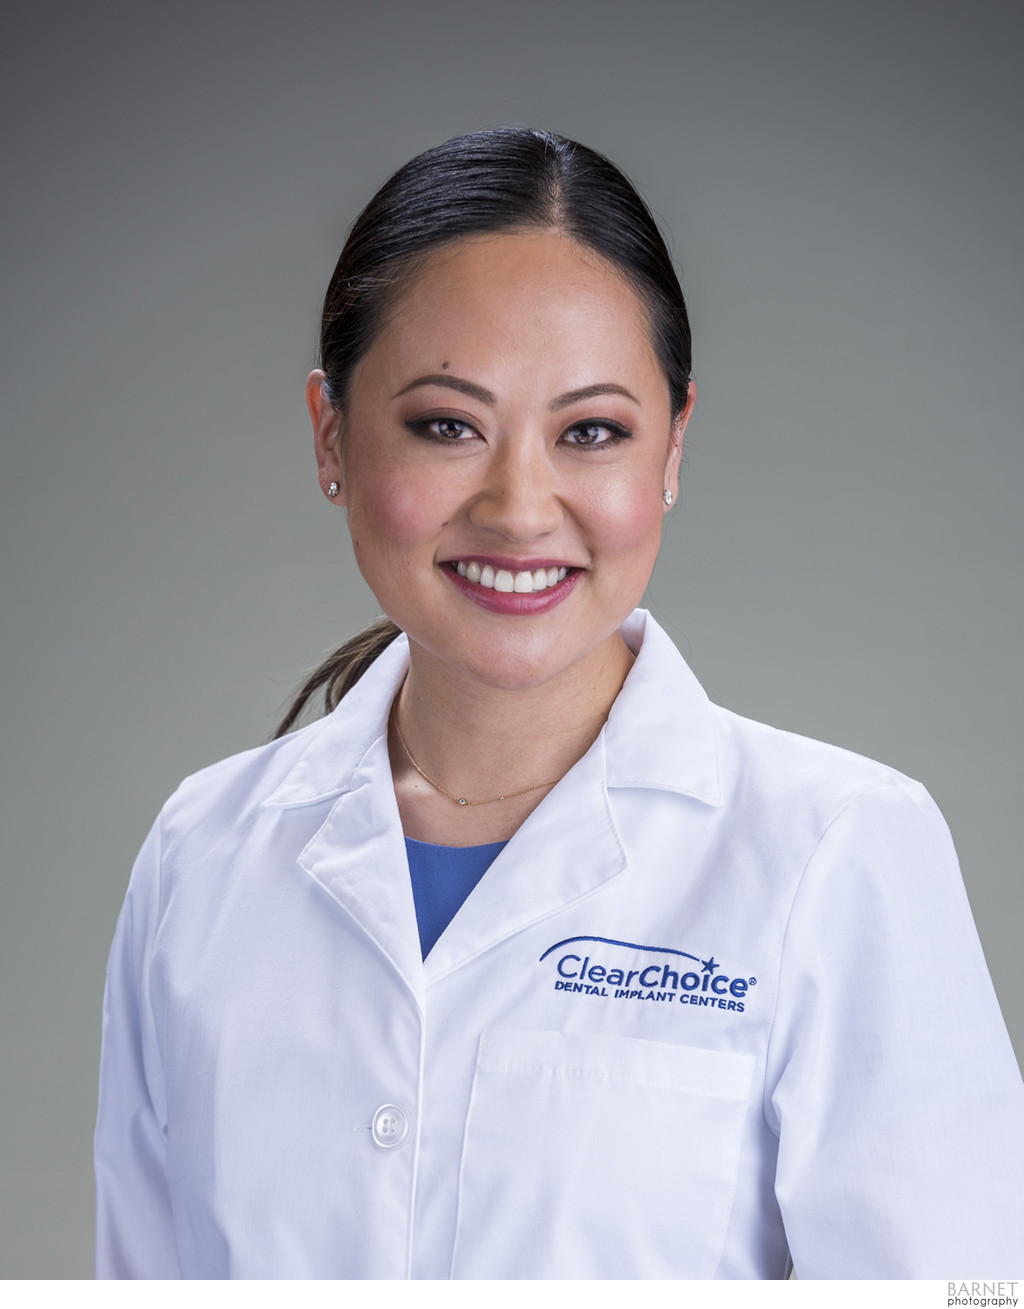 Medical Professional Studio Portrait